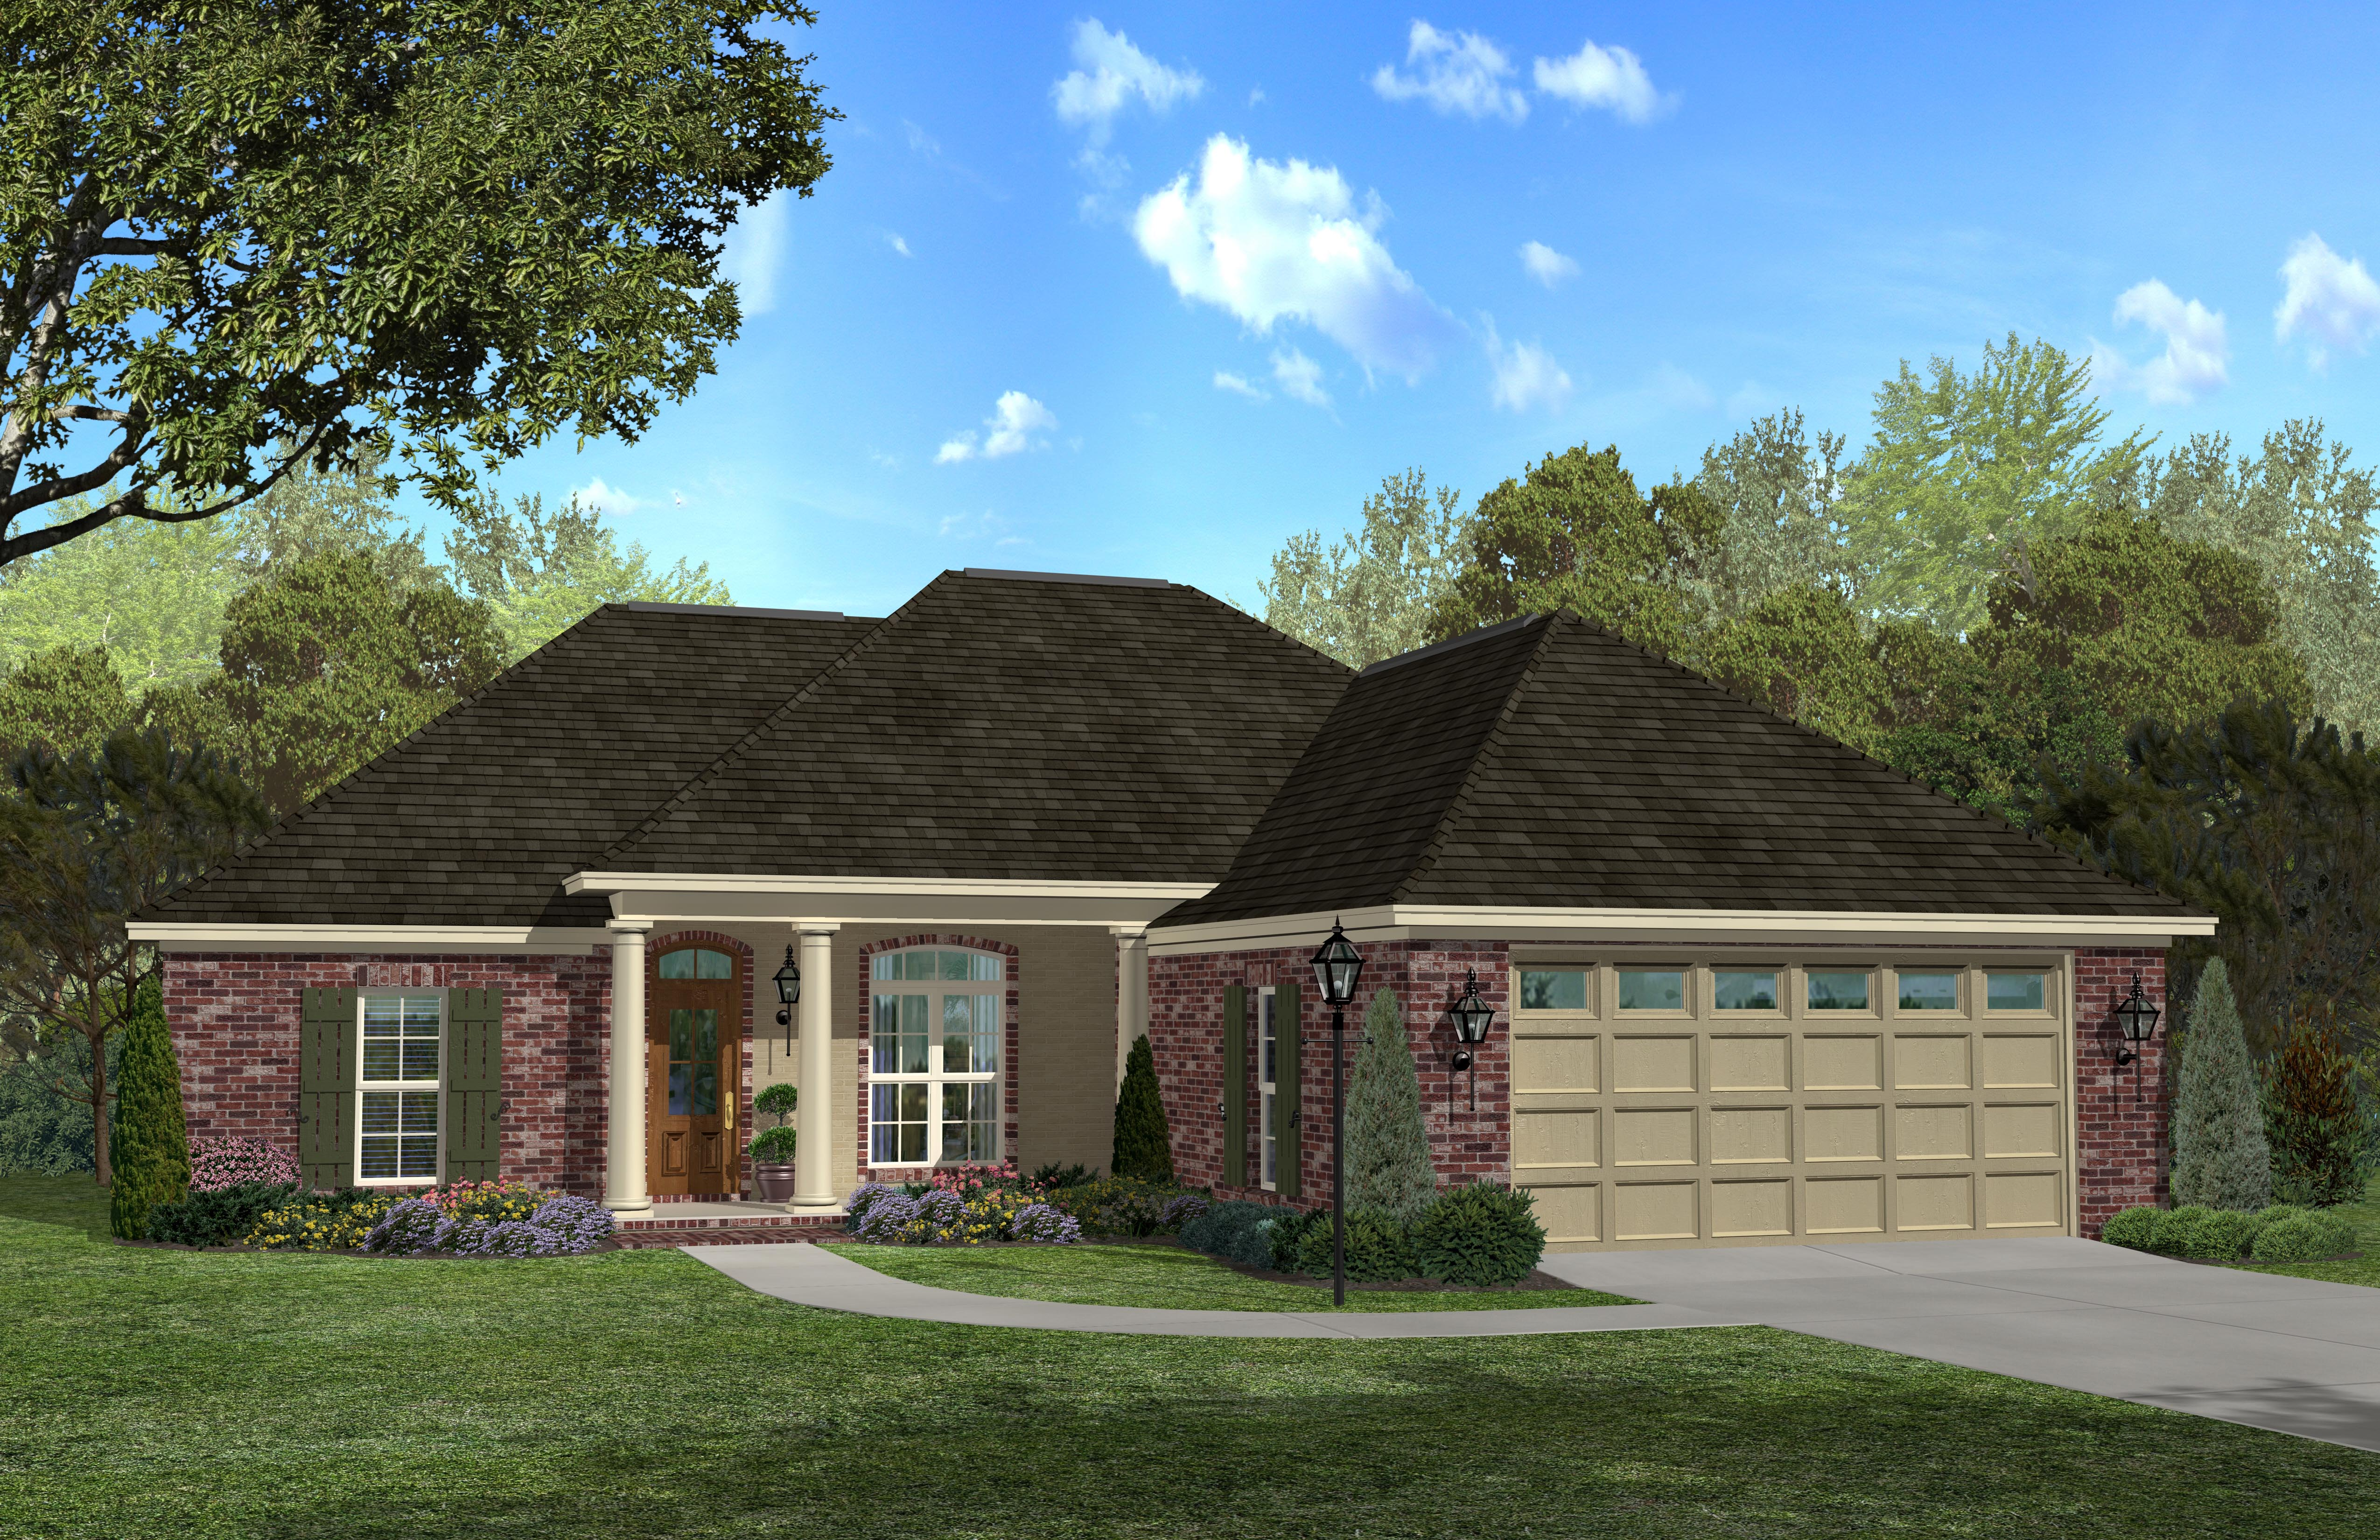 Country home plan 3 bedrms 2 baths 1700 sq ft 142 1033 for 1700s house plans